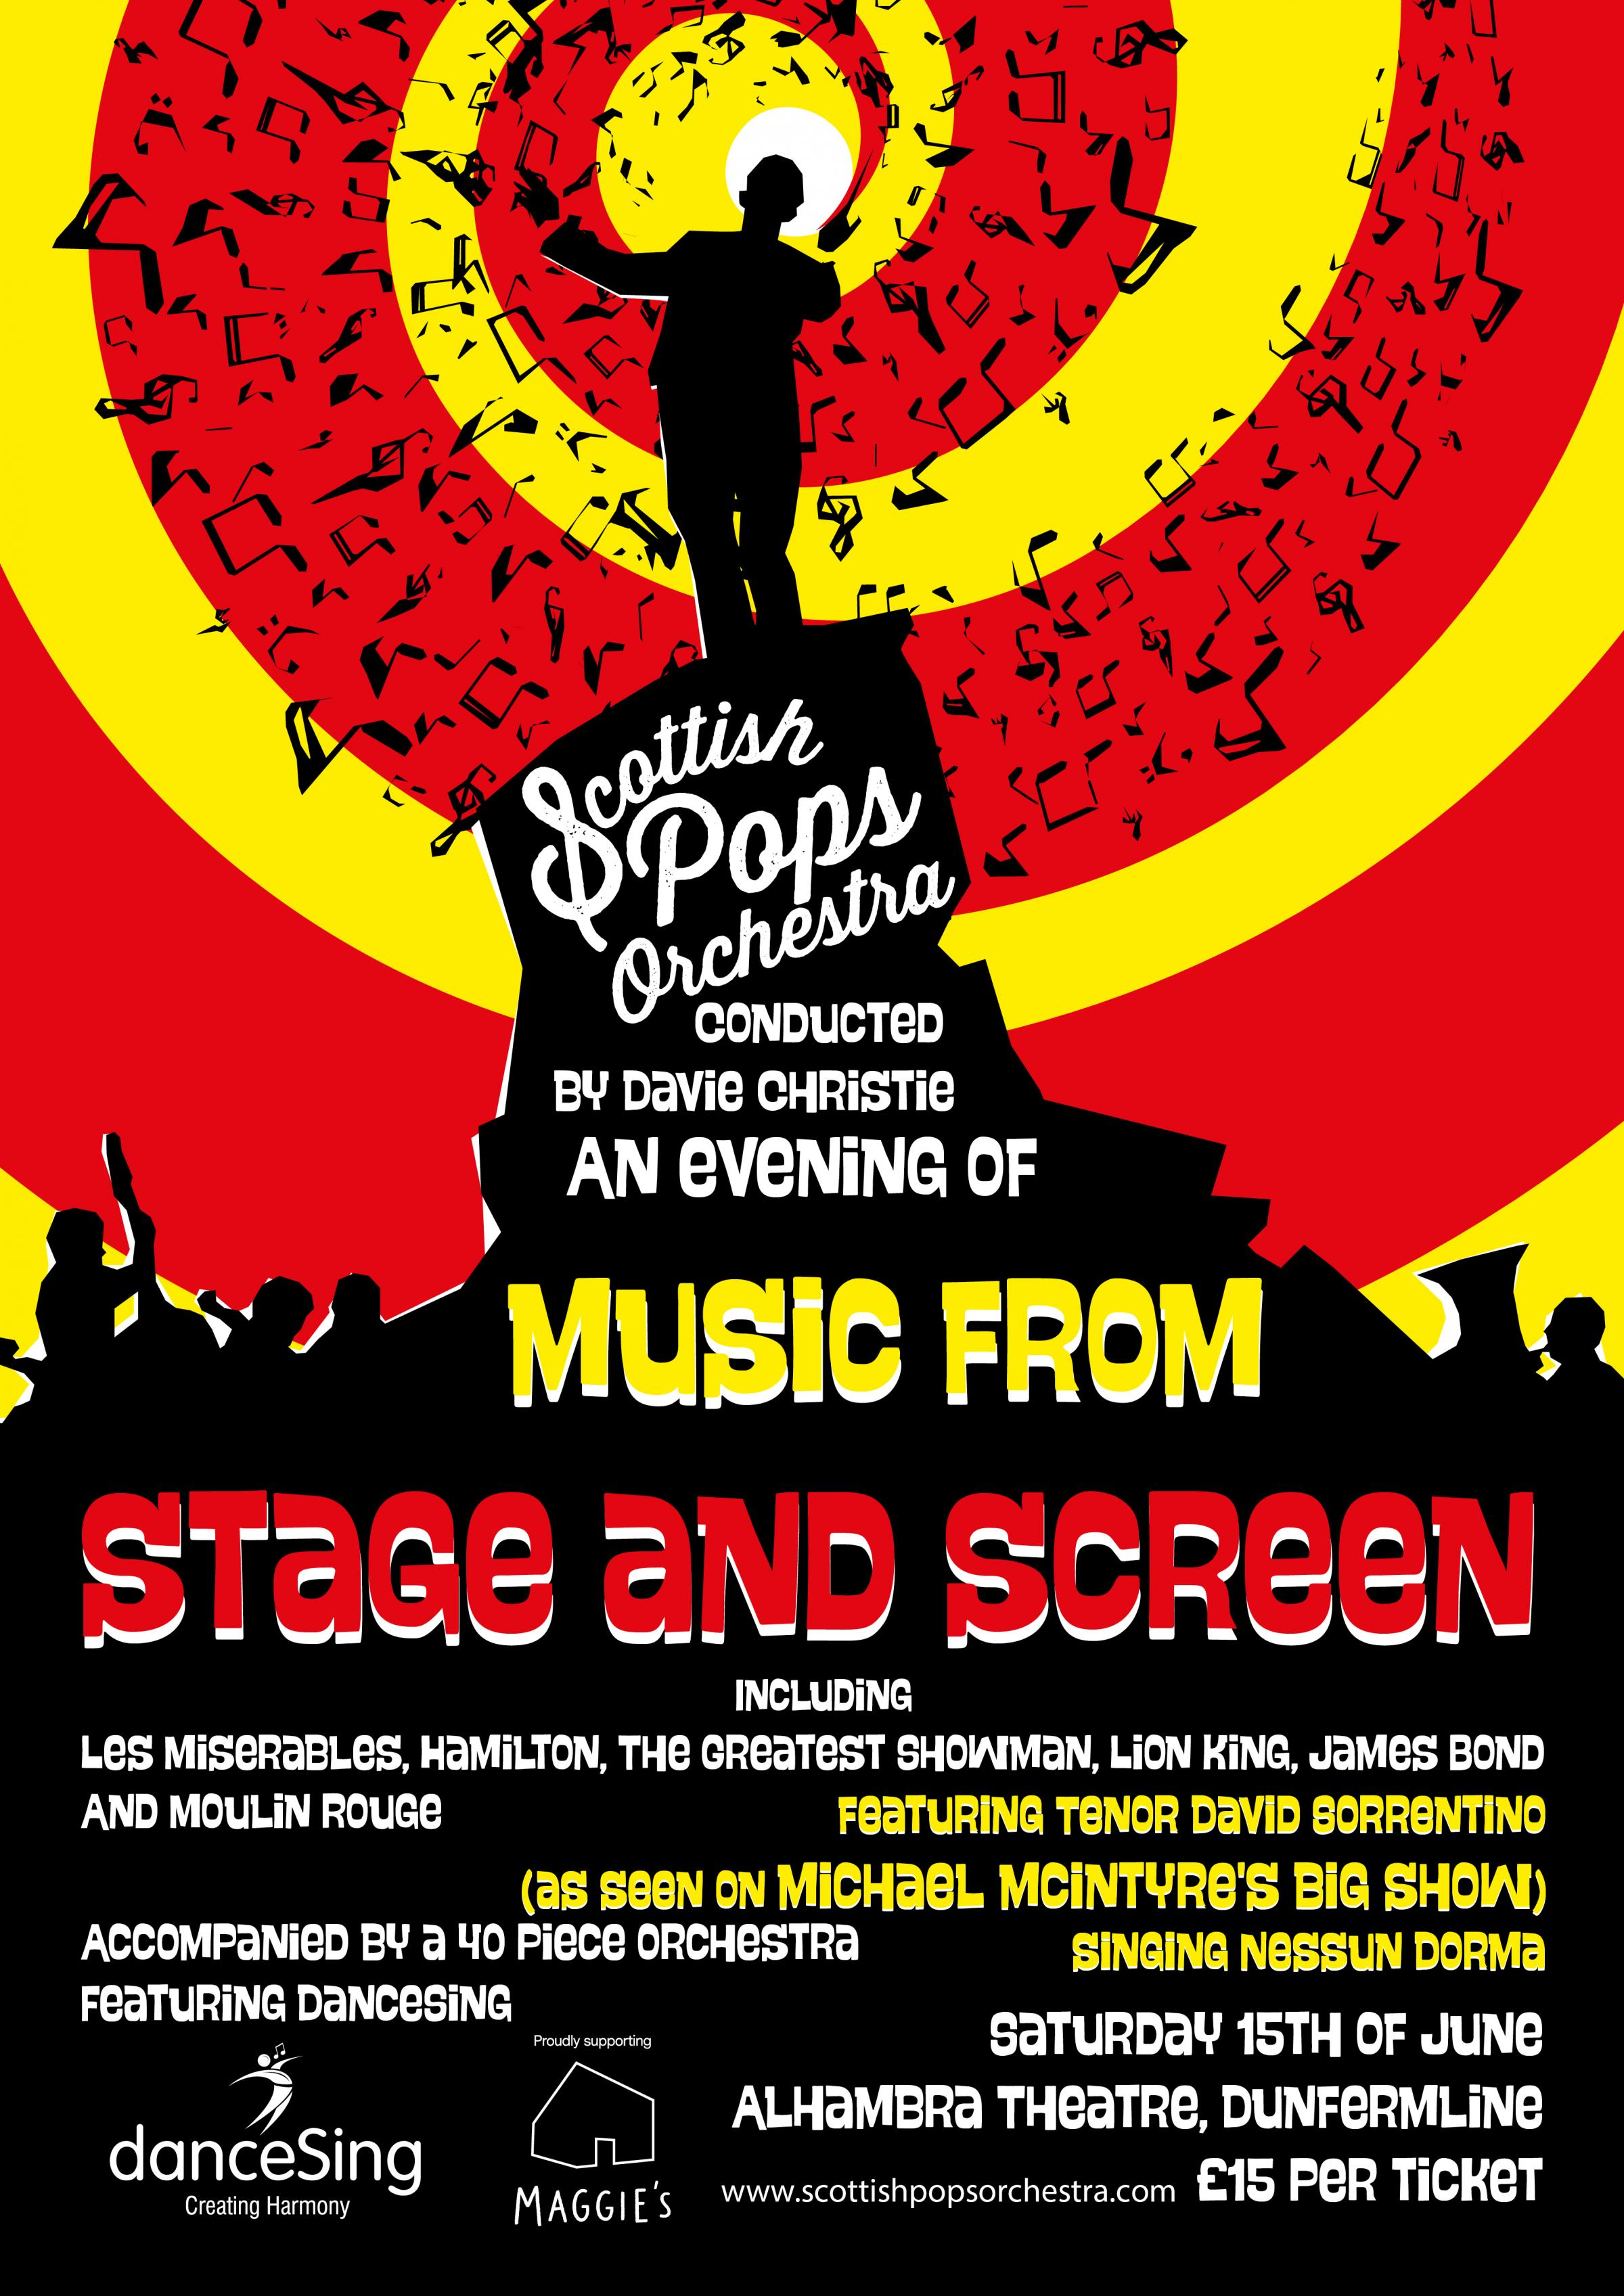 Scottish Pops Orchestra. An Evening of Music from Stage and Screen